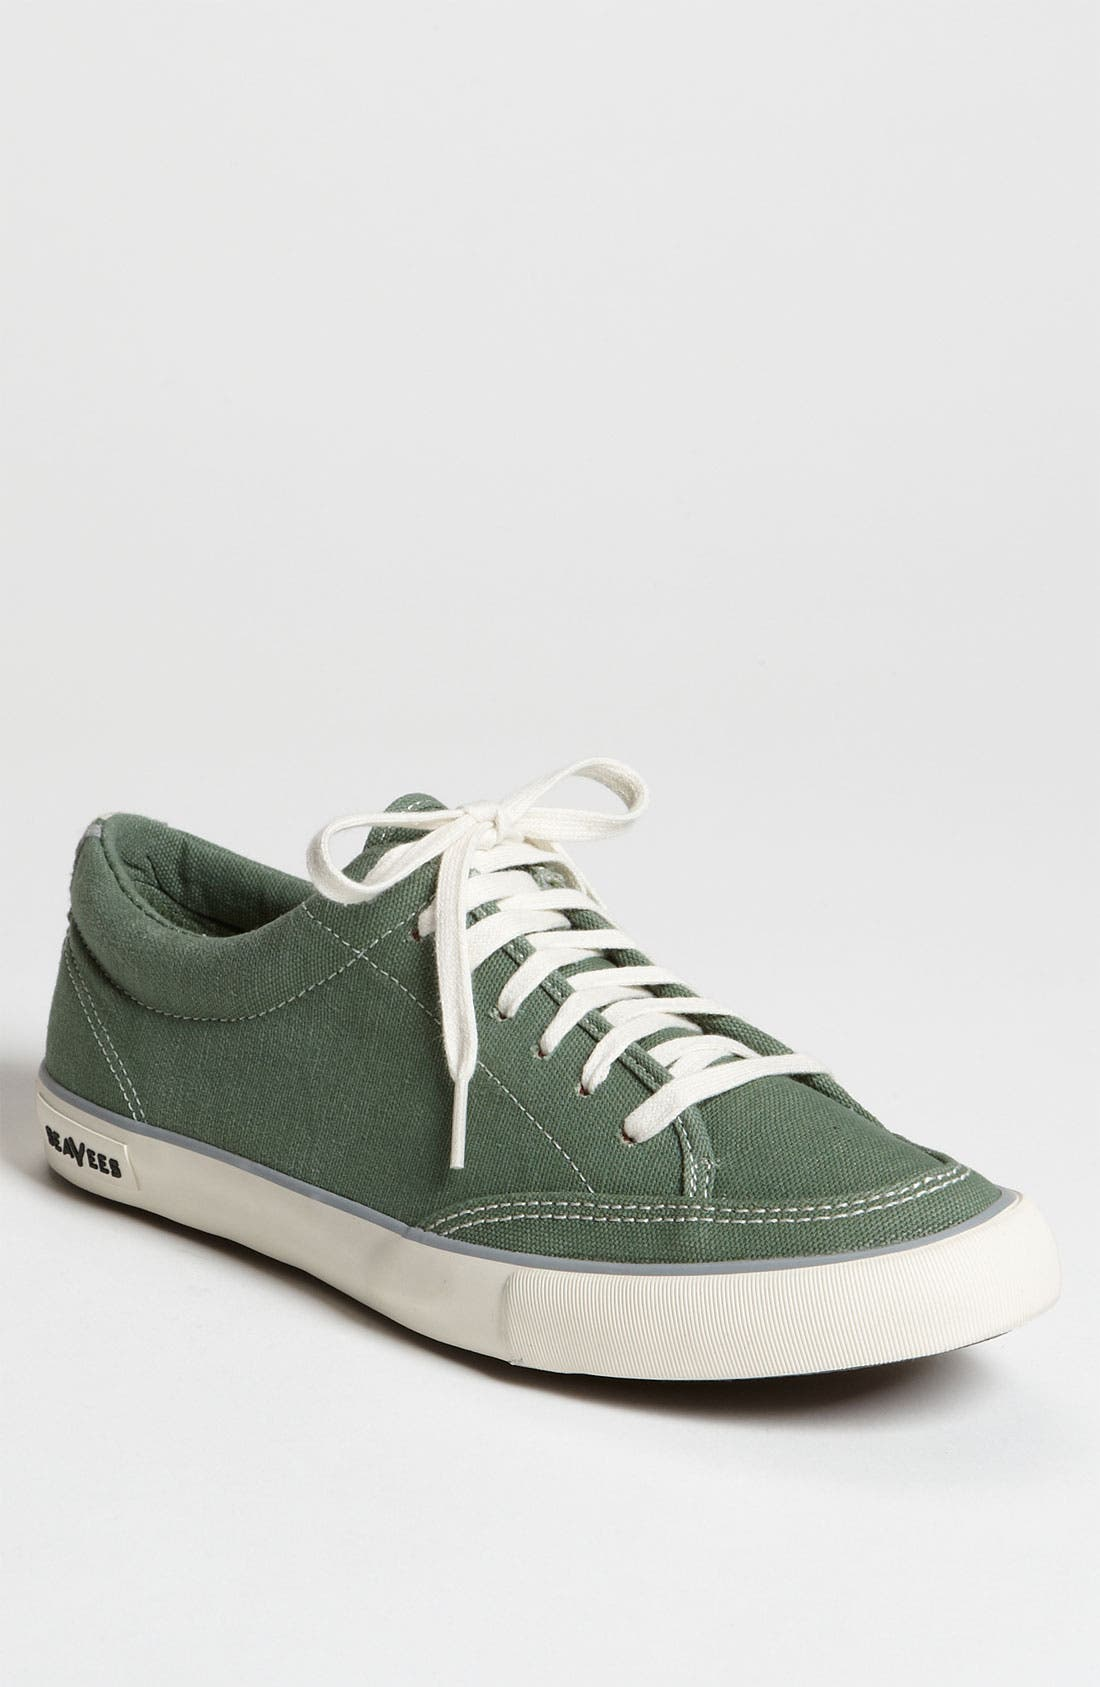 Main Image - SeaVees '05/65 Tennis Shoe'